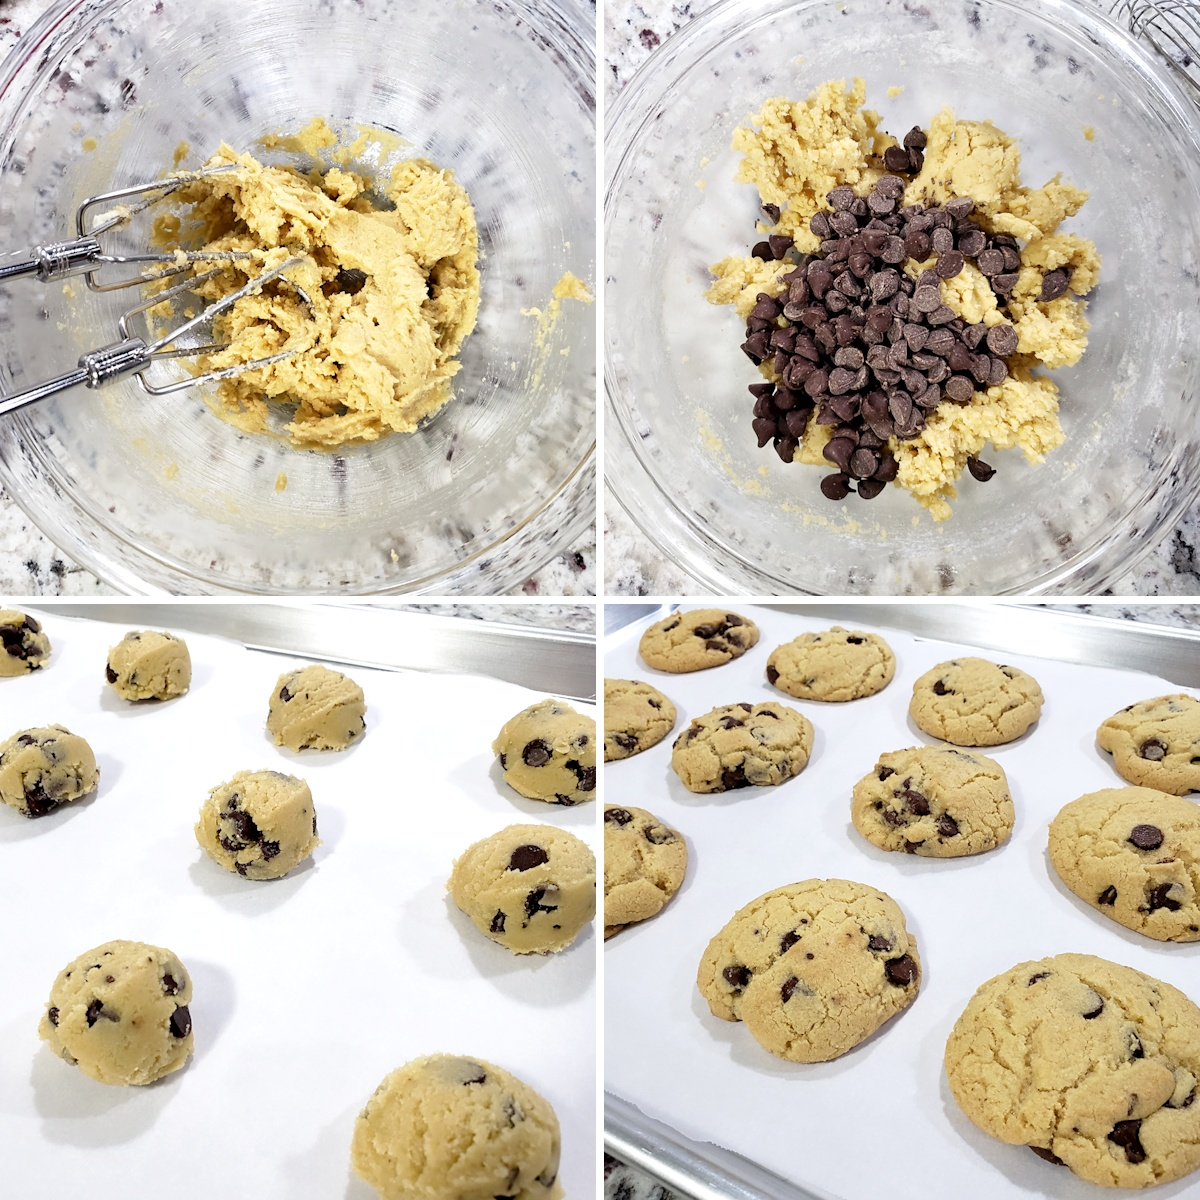 Mixing dough and baking cookies on a baking sheet.